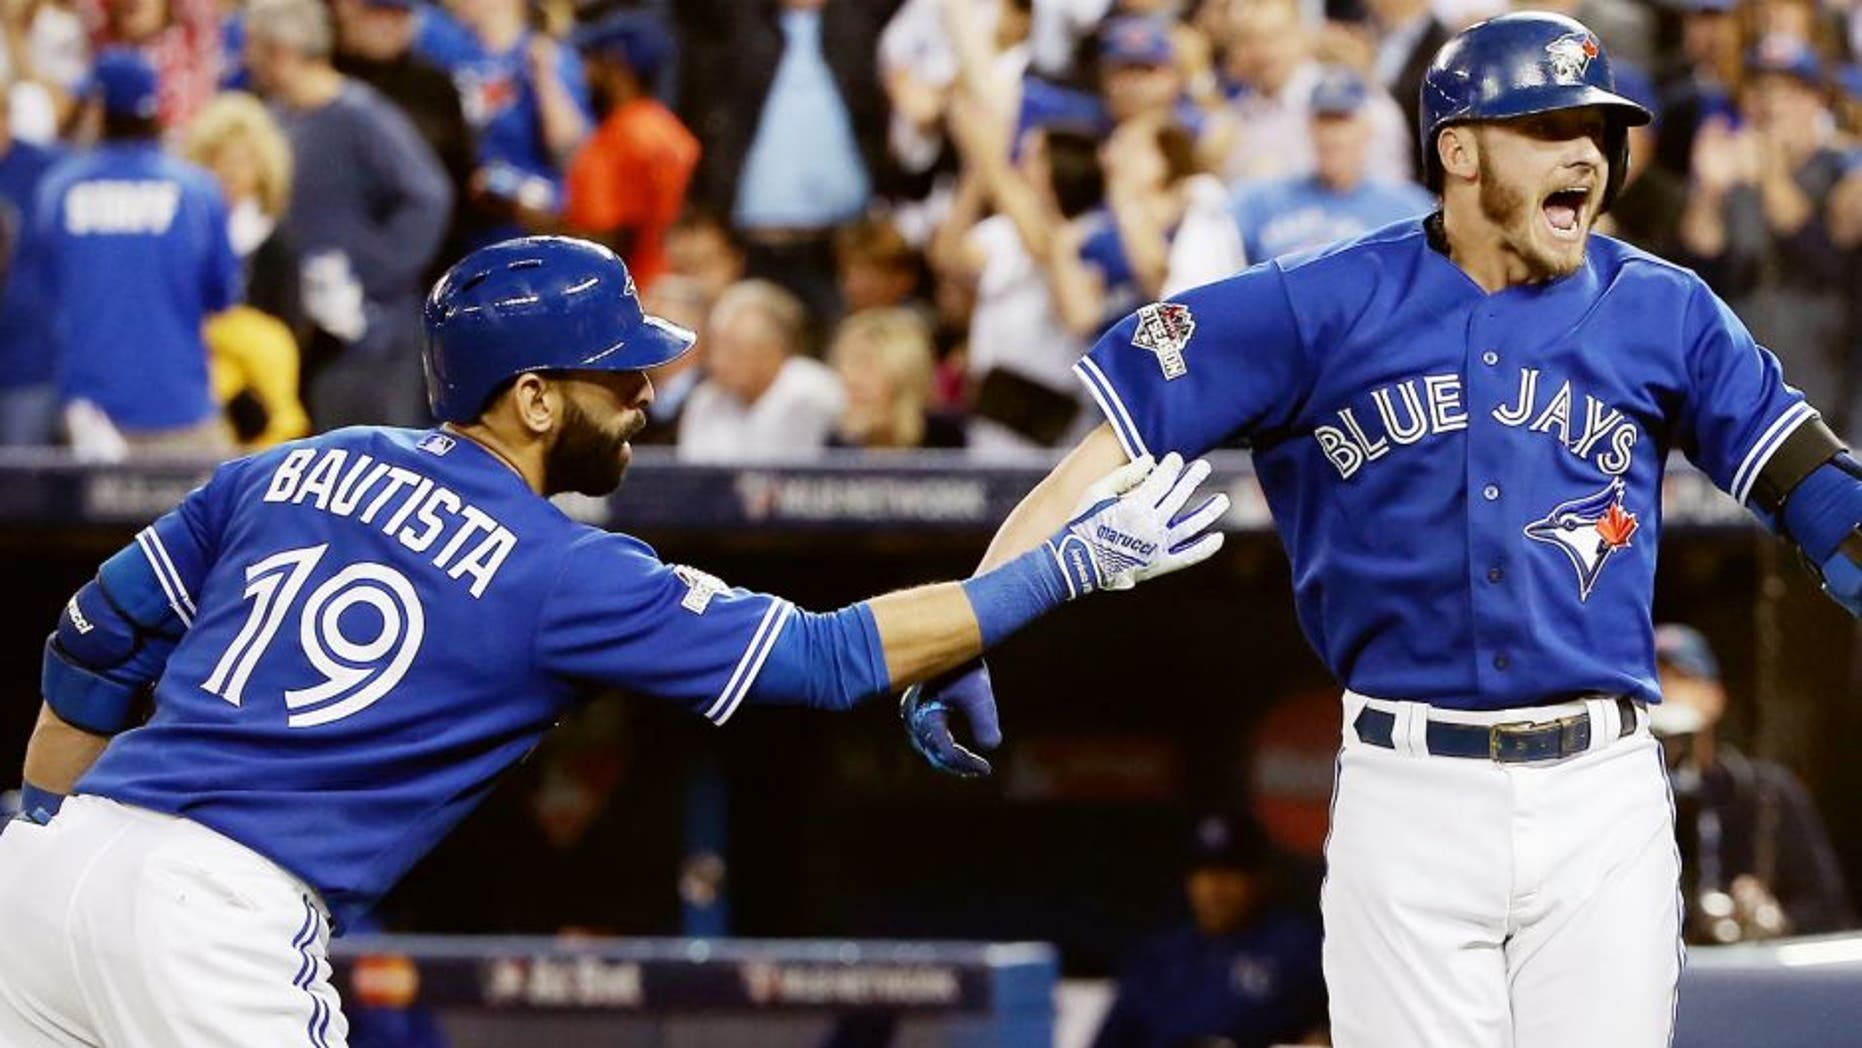 TORONTO, ON - OCTOBER 19: Josh Donaldson #20 of the Toronto Blue Jays celebrates with Jose Bautista #19 of the Toronto Blue Jays after hitting a two-run home run in the third inning against the Kansas City Royals during game three of the American League Championship Series at Rogers Centre on October 19, 2015 in Toronto, Canada. (Photo by Tom Szczerbowski/Getty Images)